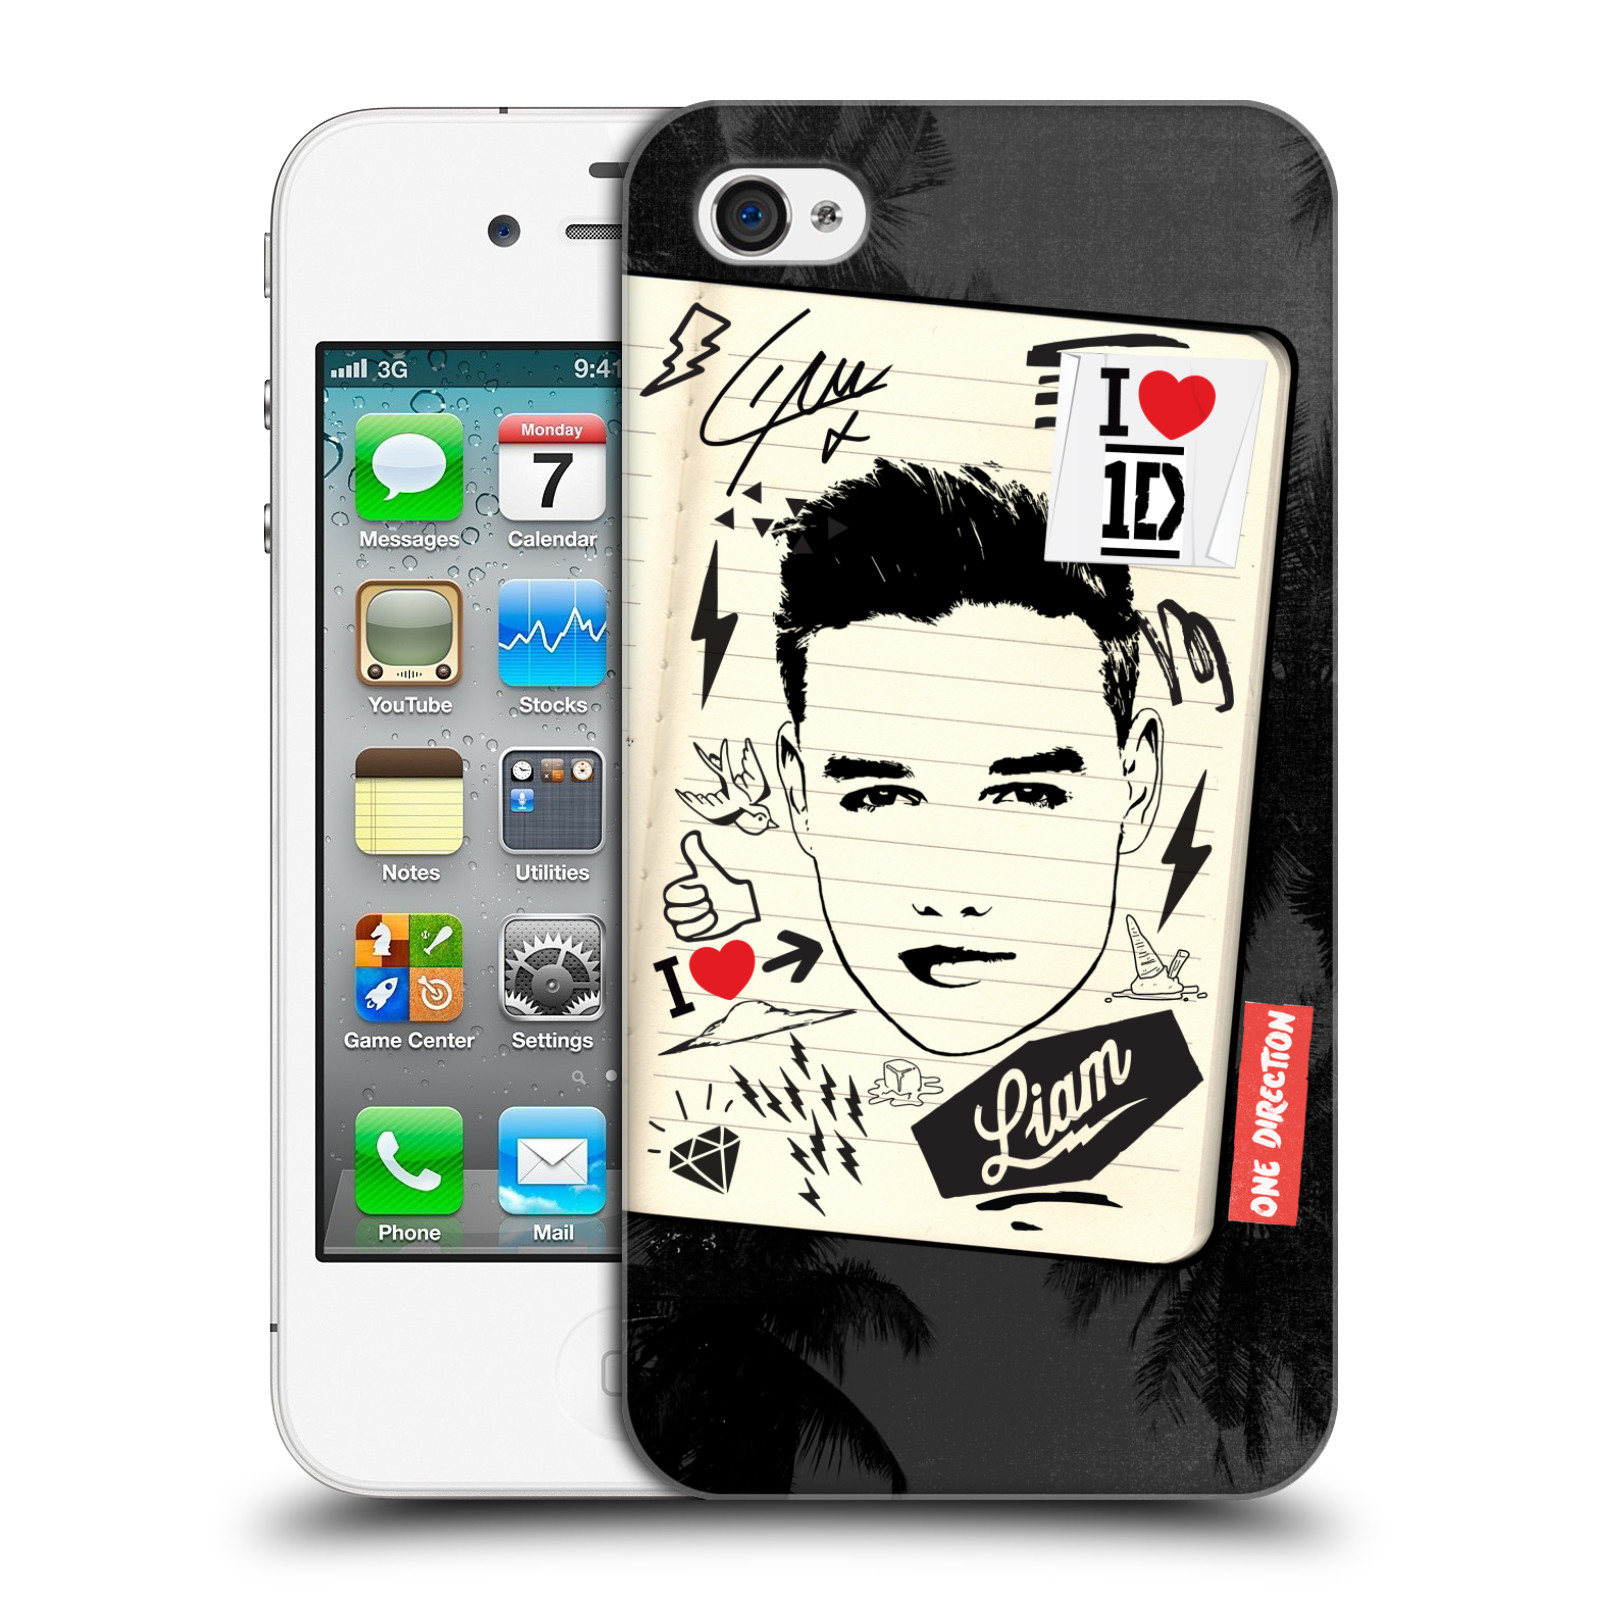 OFFICIAL-ONE-DIRECTION-1D-FANPHERNALIA-HARD-BACK-CASE-FOR-APPLE-iPHONE-4